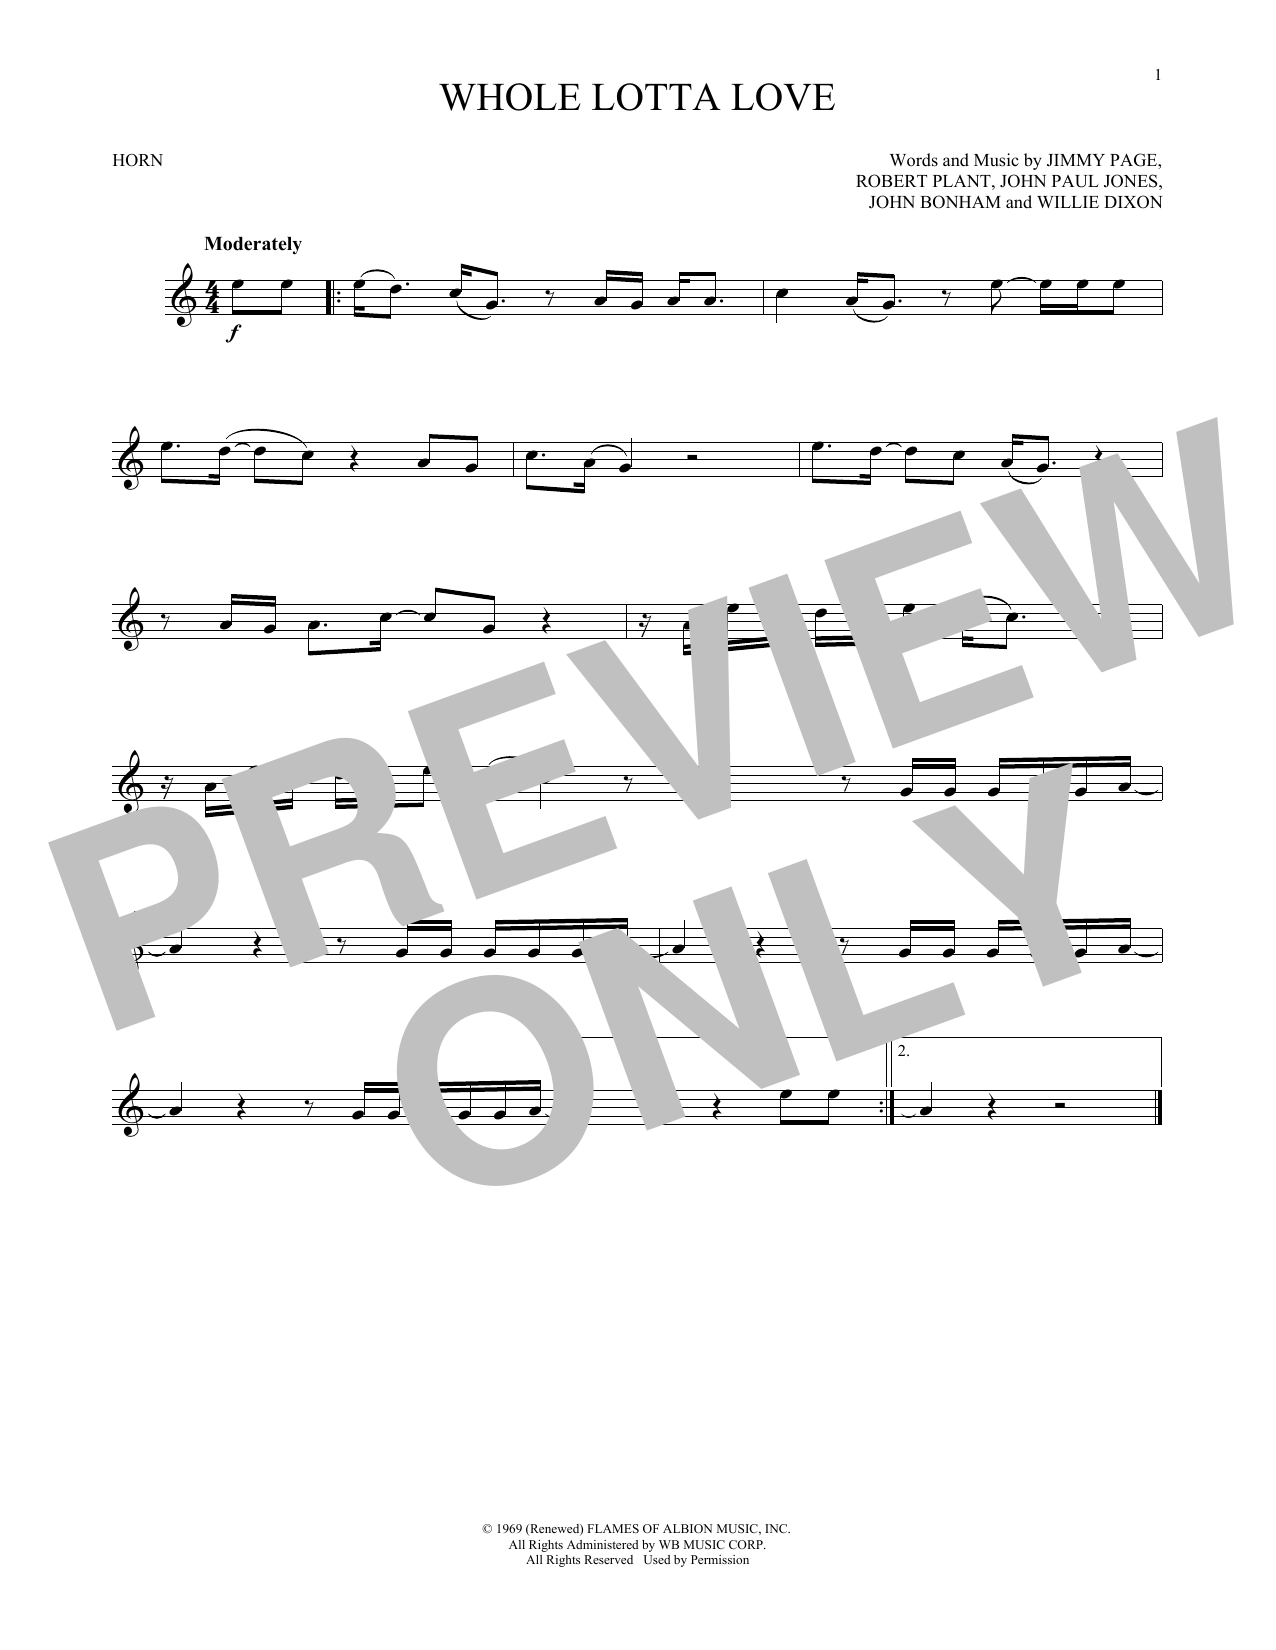 Whole Lotta Love (French Horn Solo)